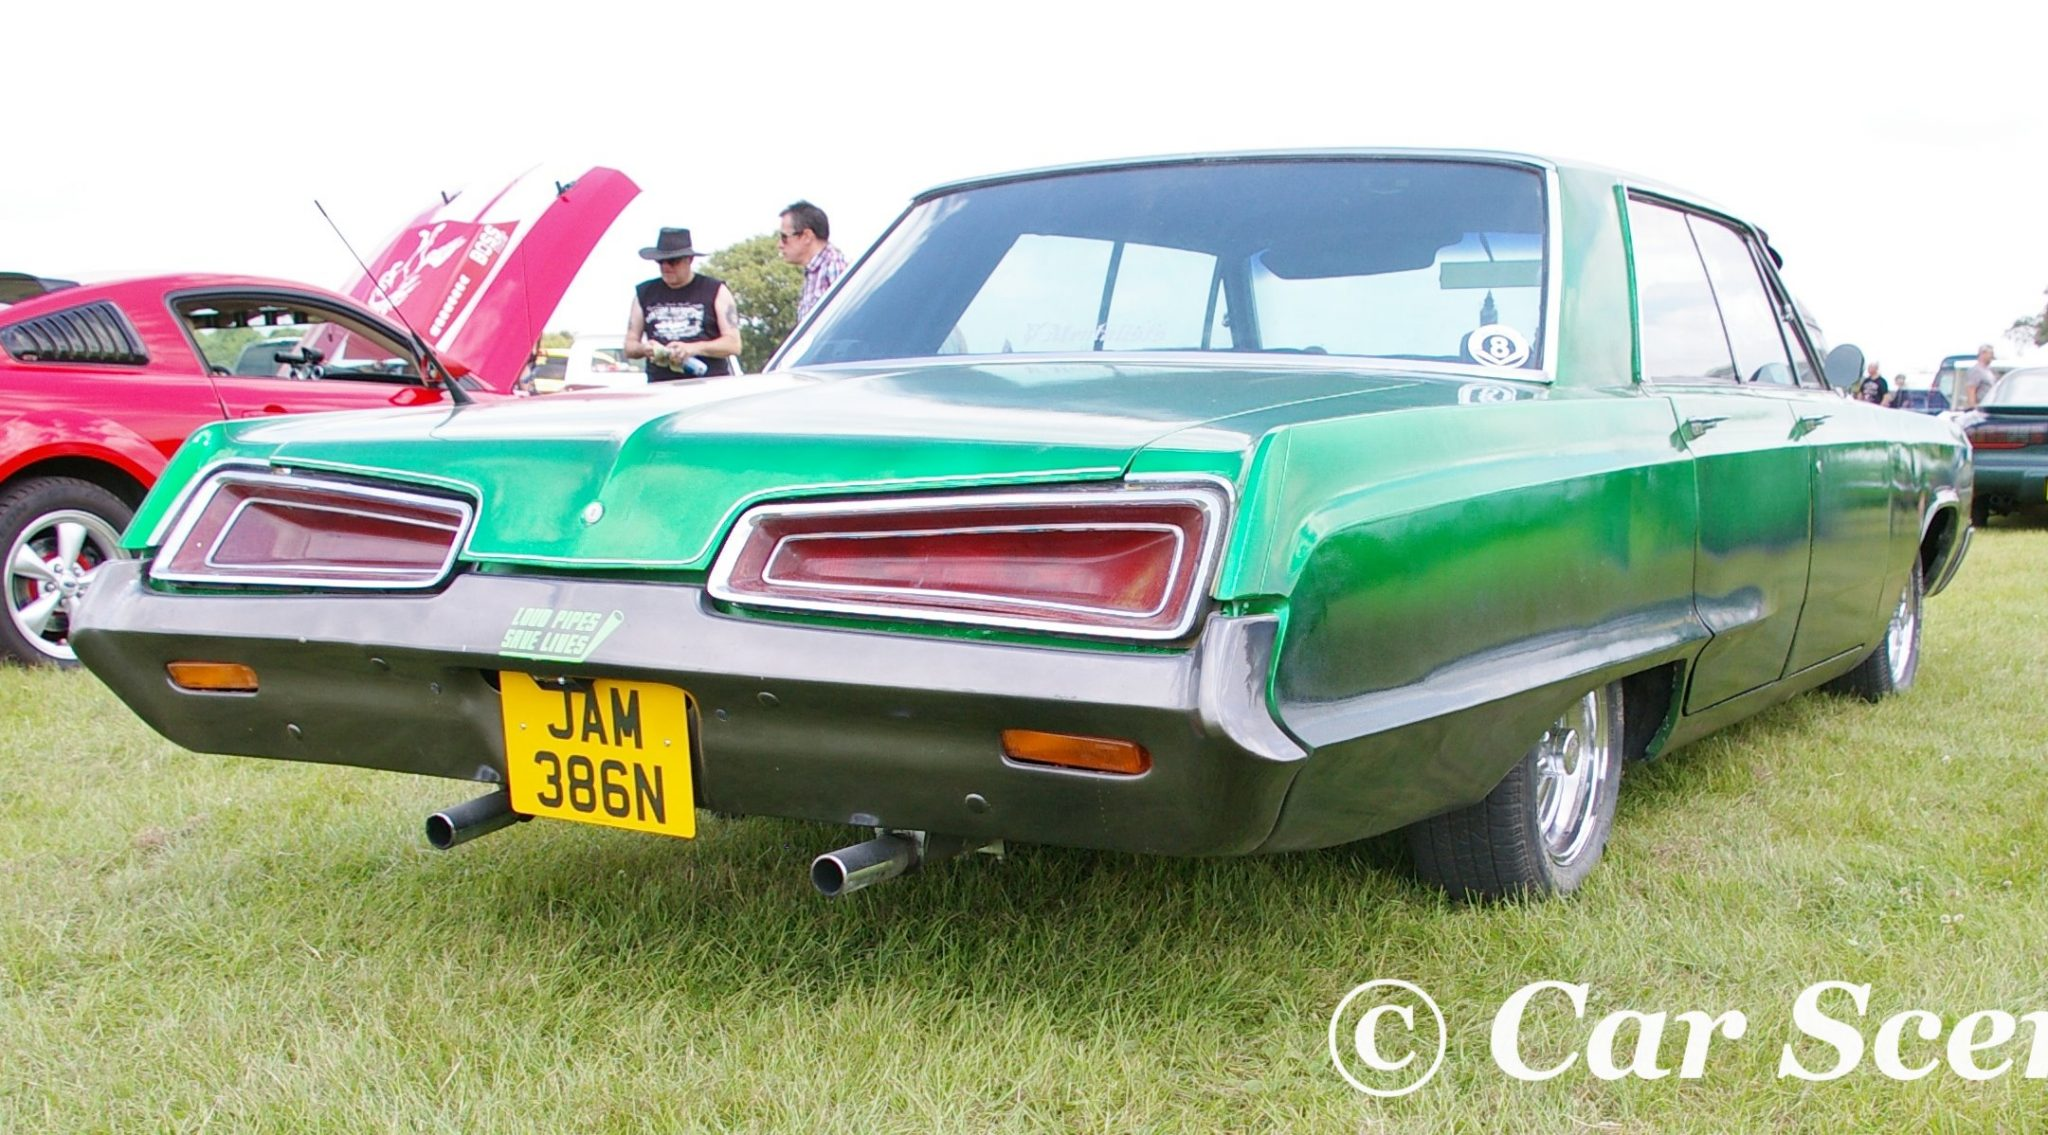 1968 Dodge Polara rear view